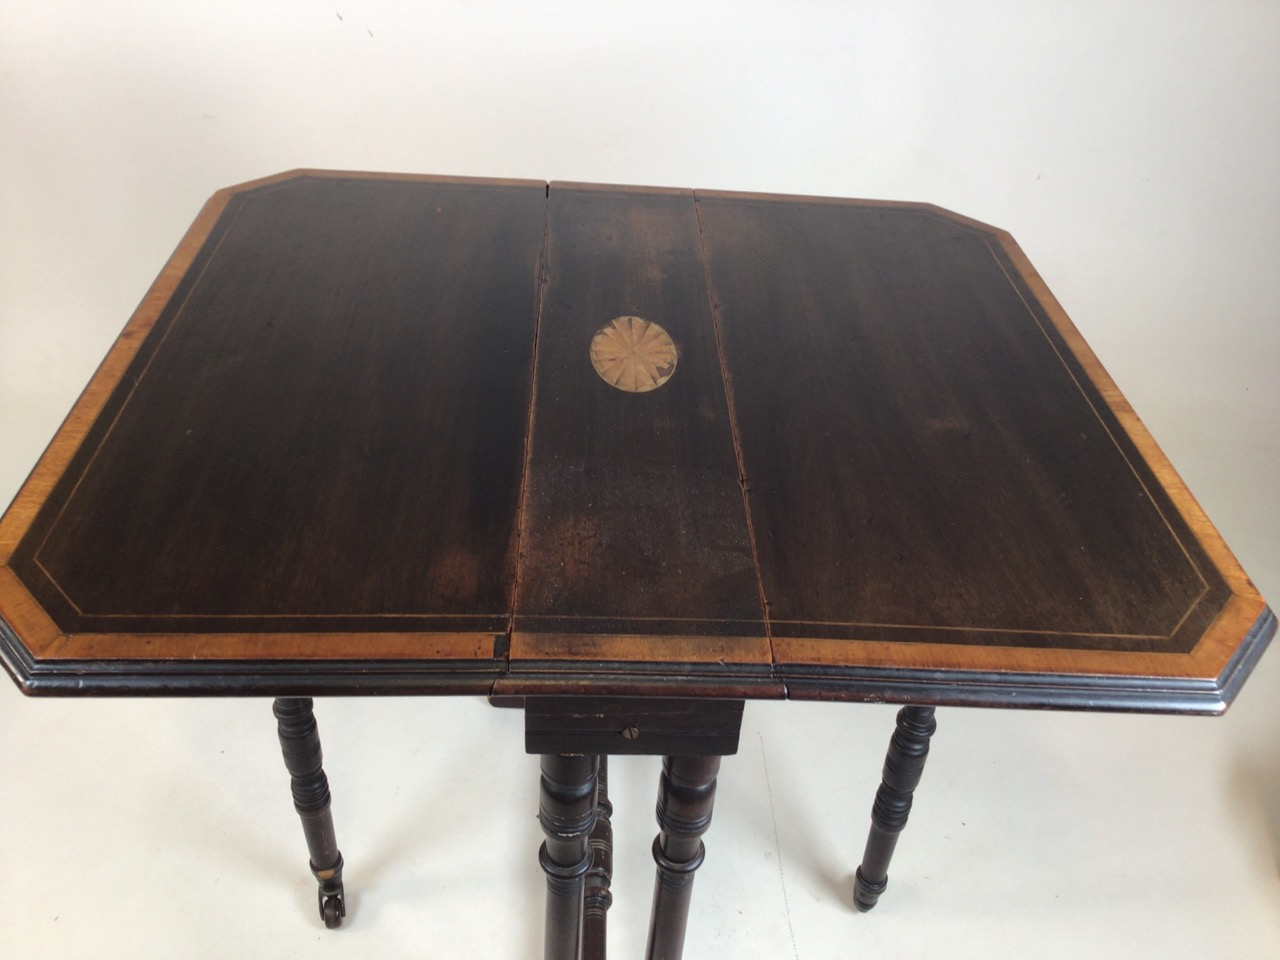 A small Edwardian mahogany inlaid Sutherland table with turned legs and stretcher with ceramic - Image 5 of 9